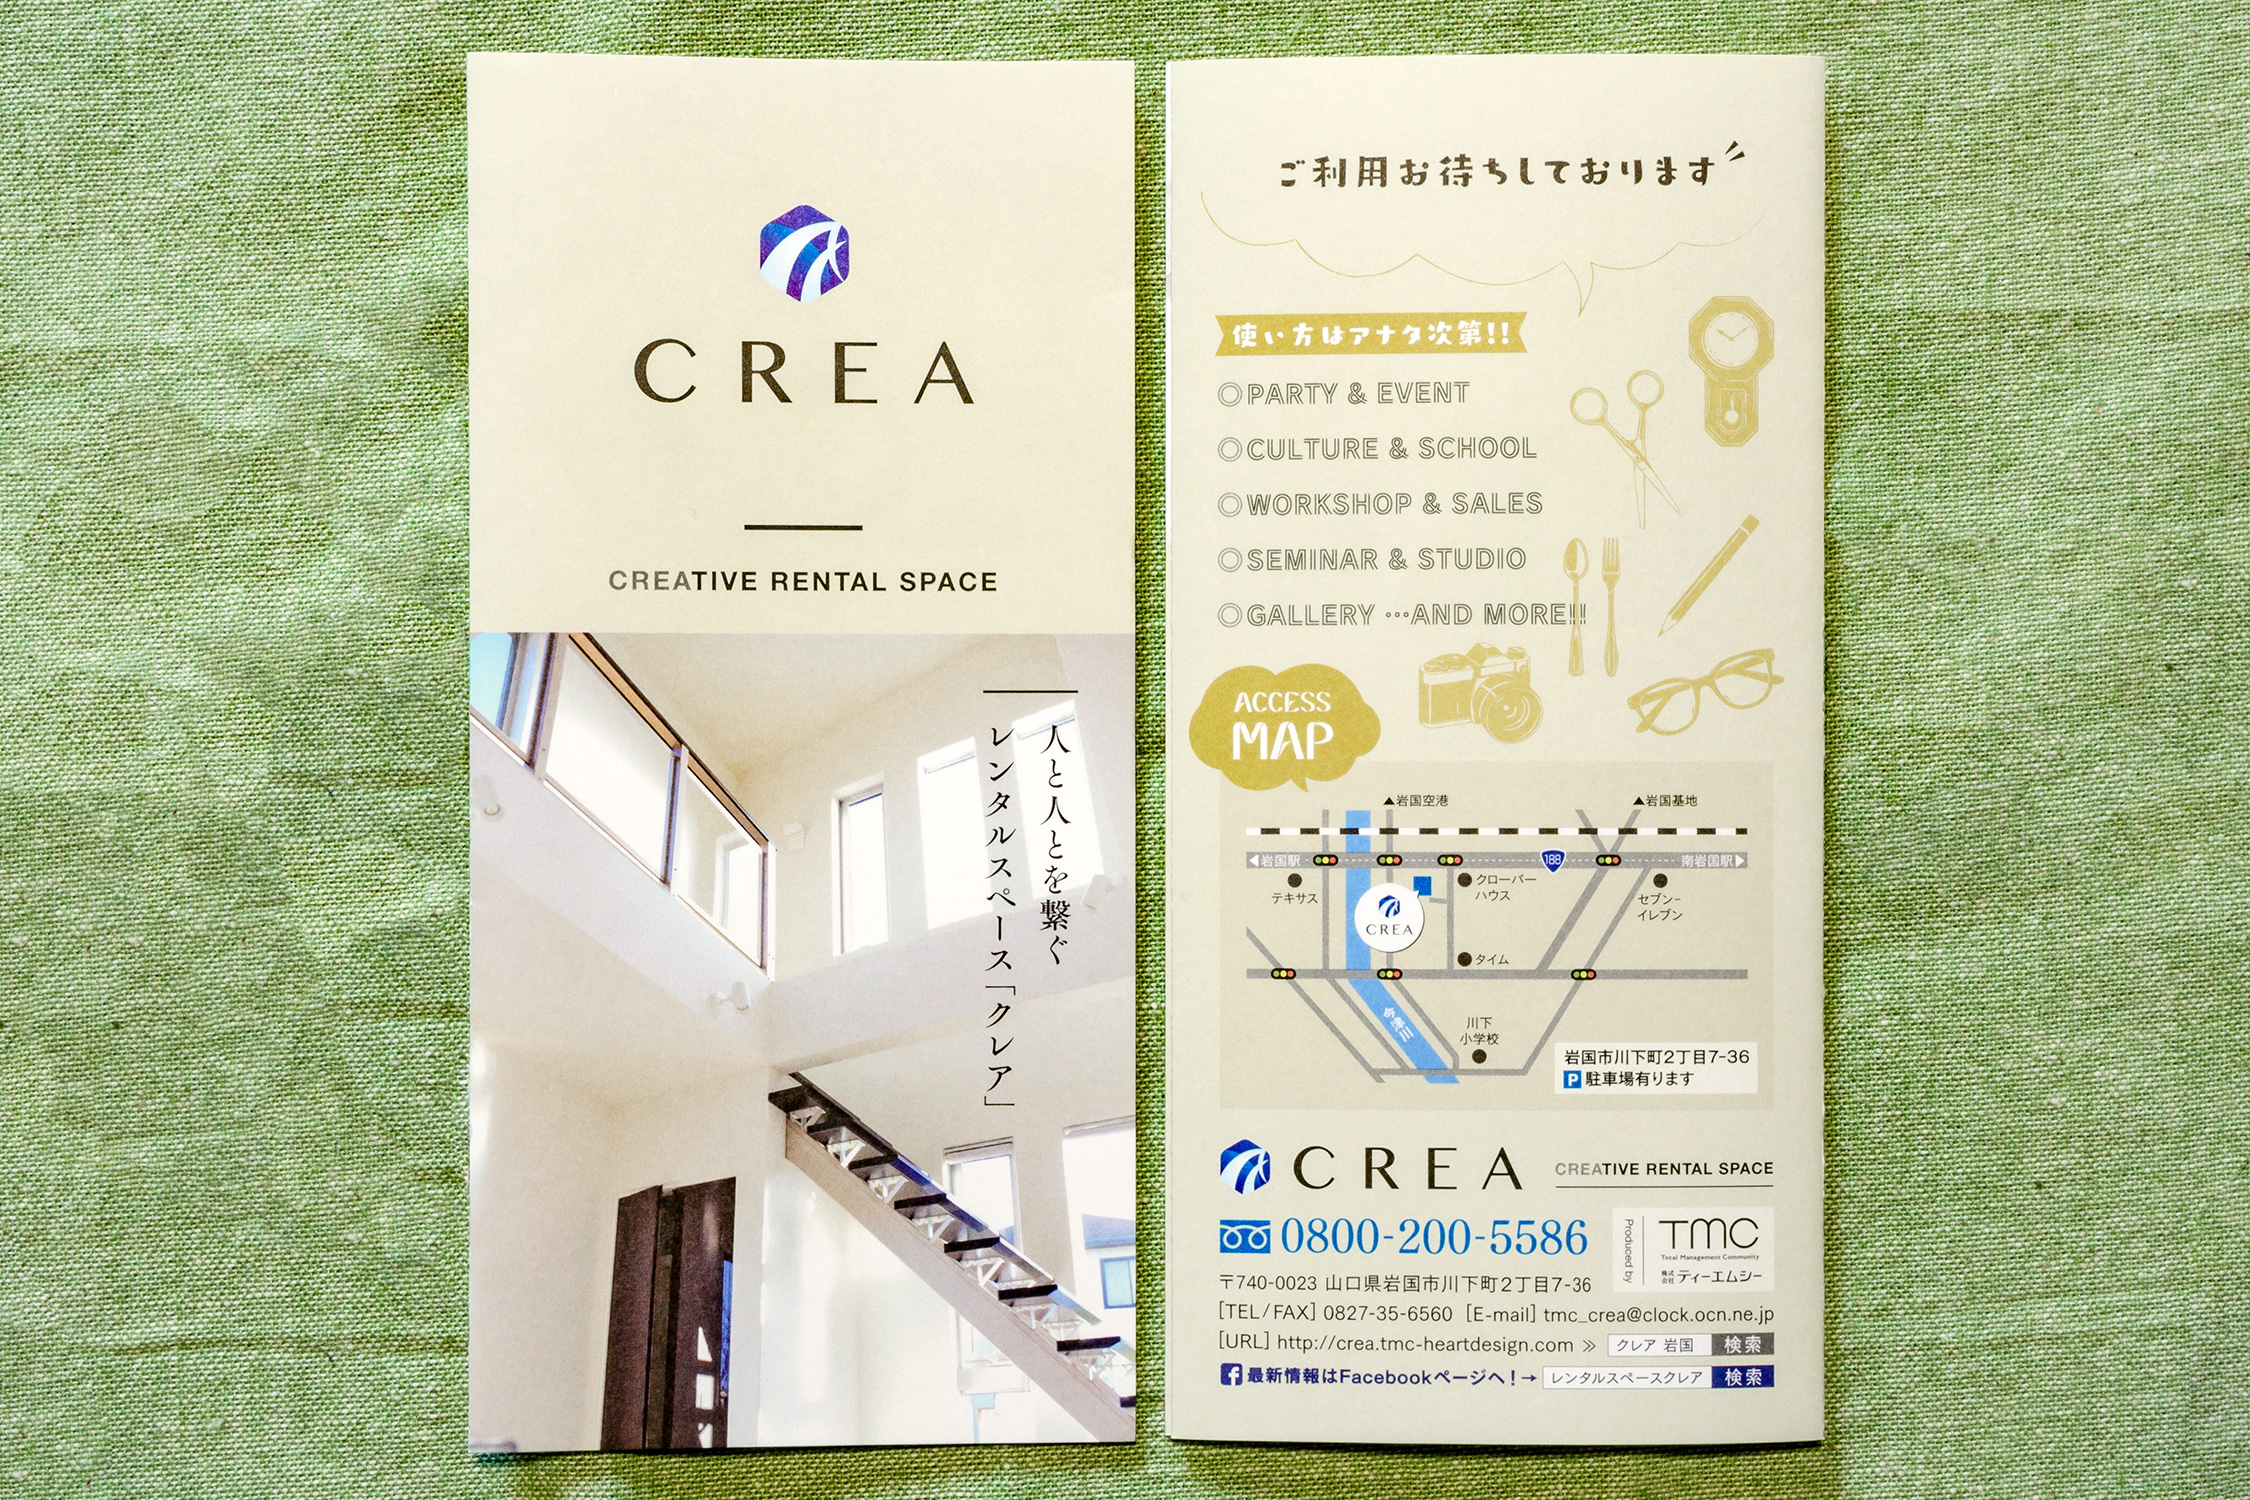 brochure_tmc-crea-rental-space_2